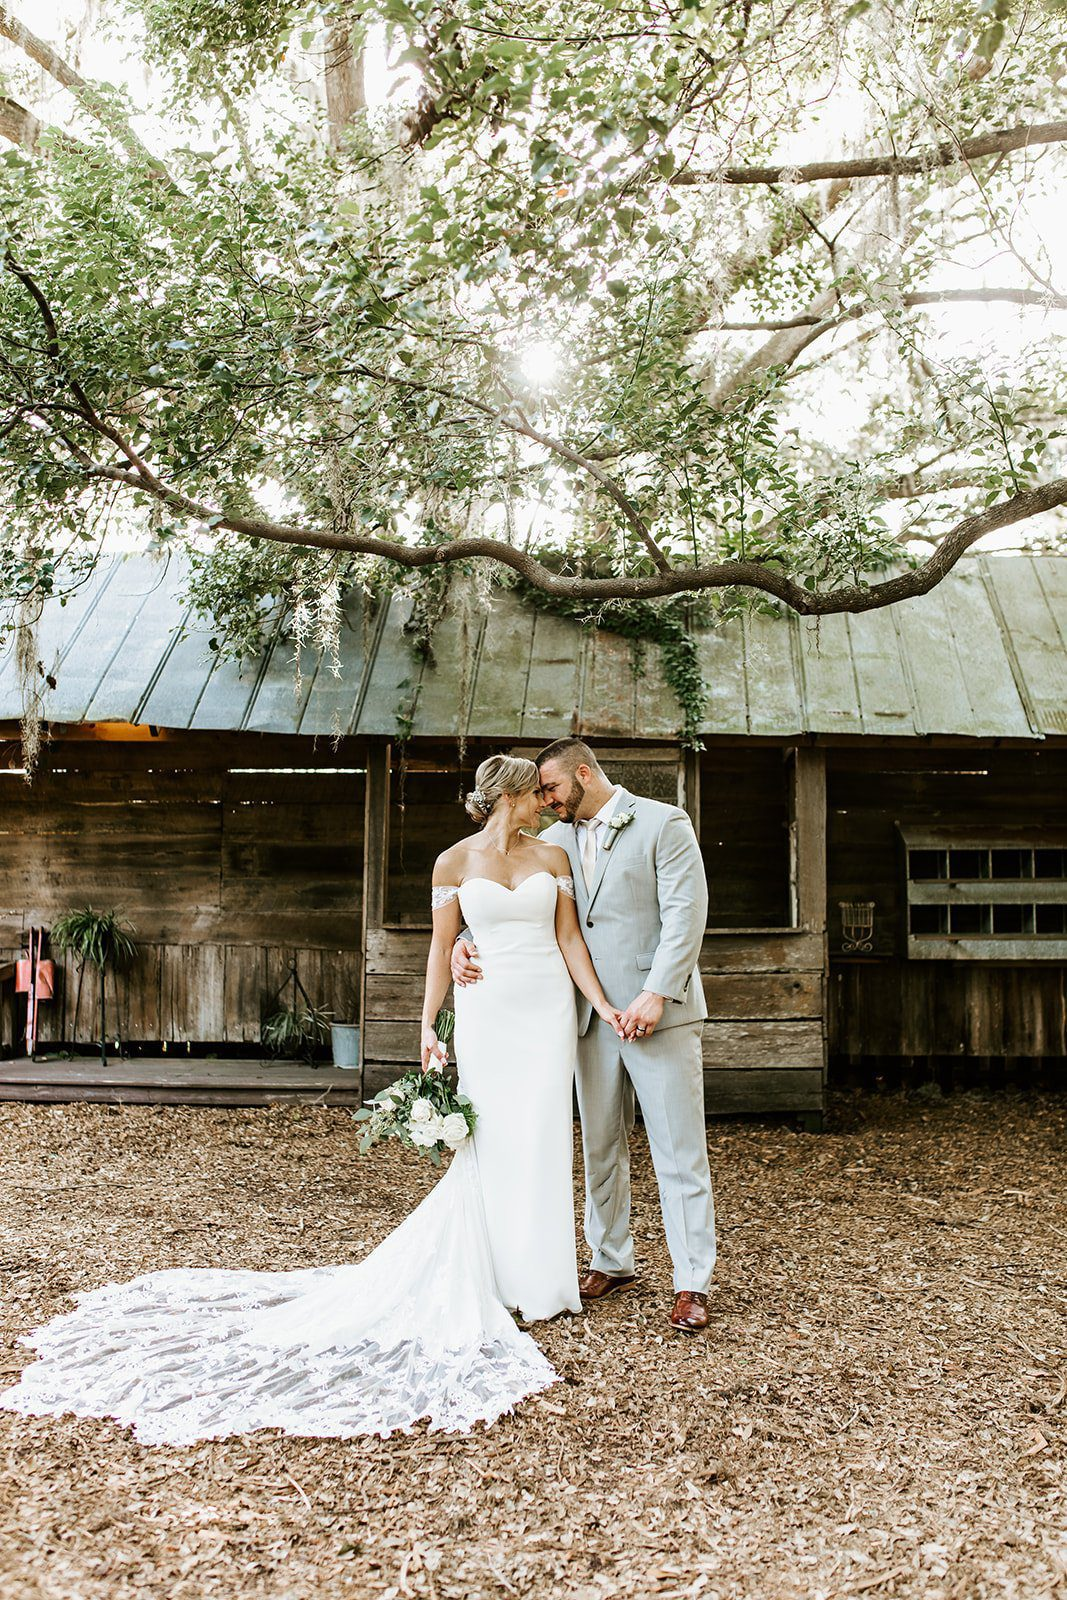 Ashley + Sal's Dreamy Rustic Peach Wedding